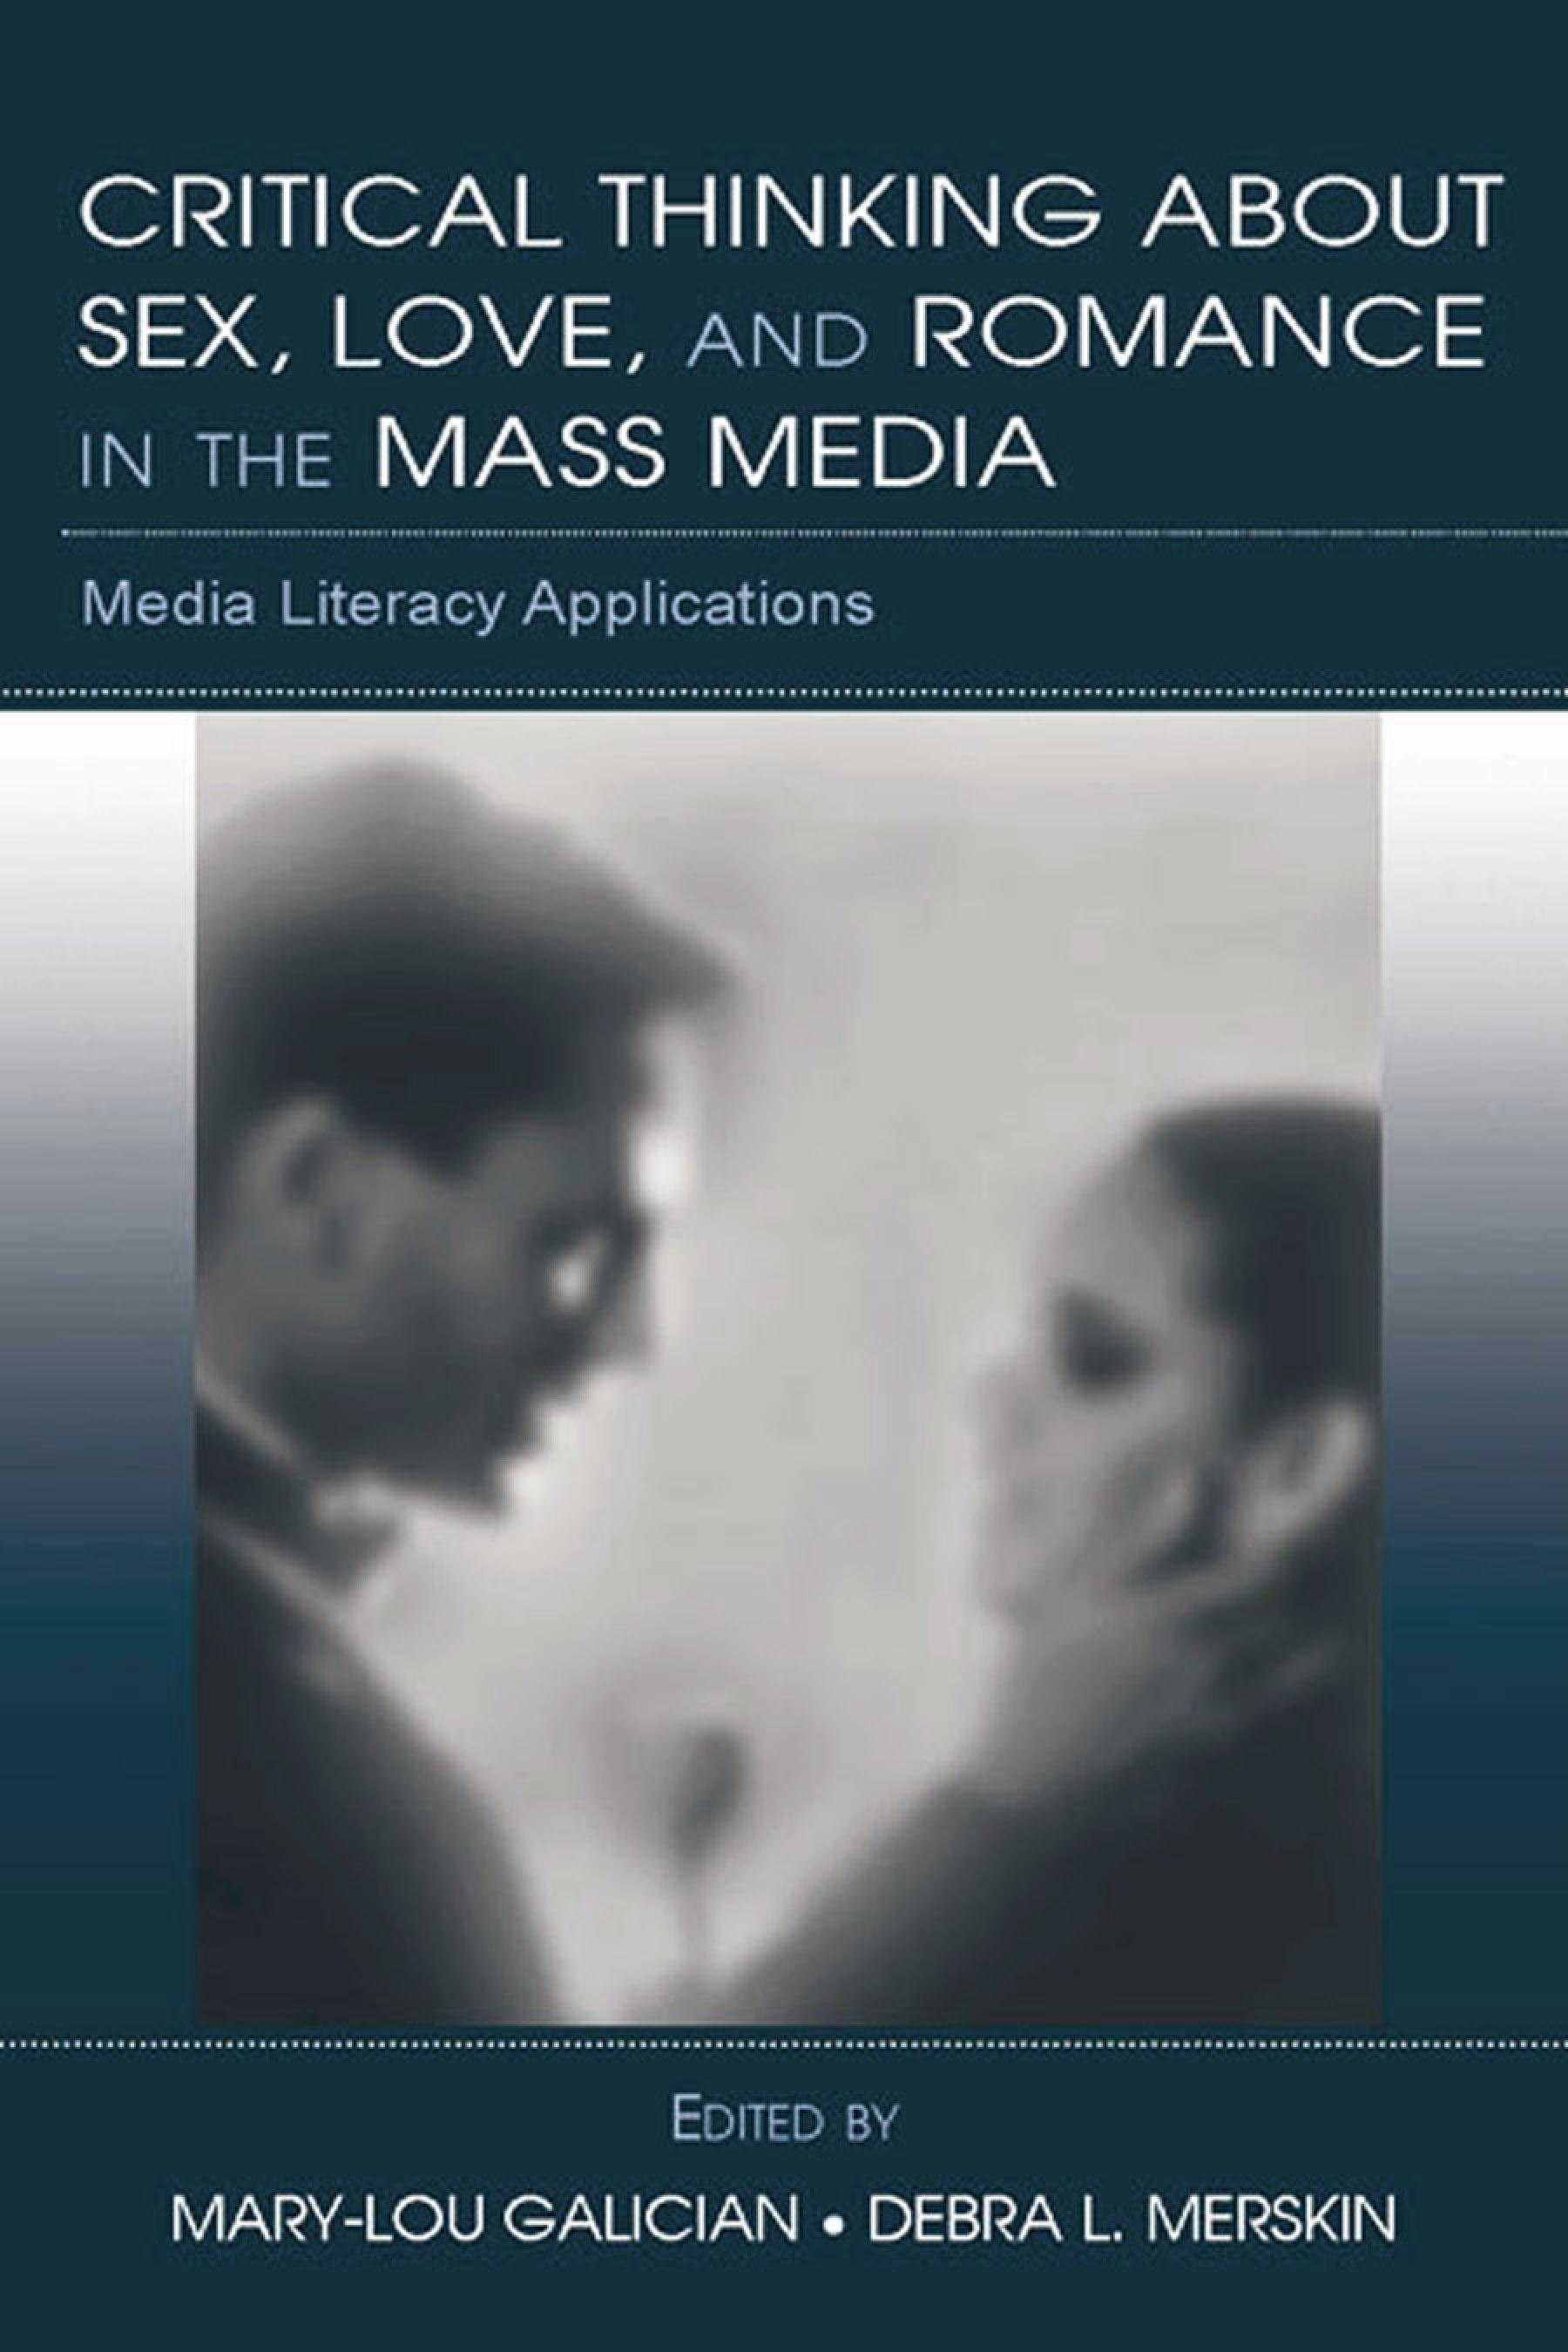 Critical Thinking About Sex, Love, and Romance in the Mass Media: Media Literacy Applications EB9781410614667